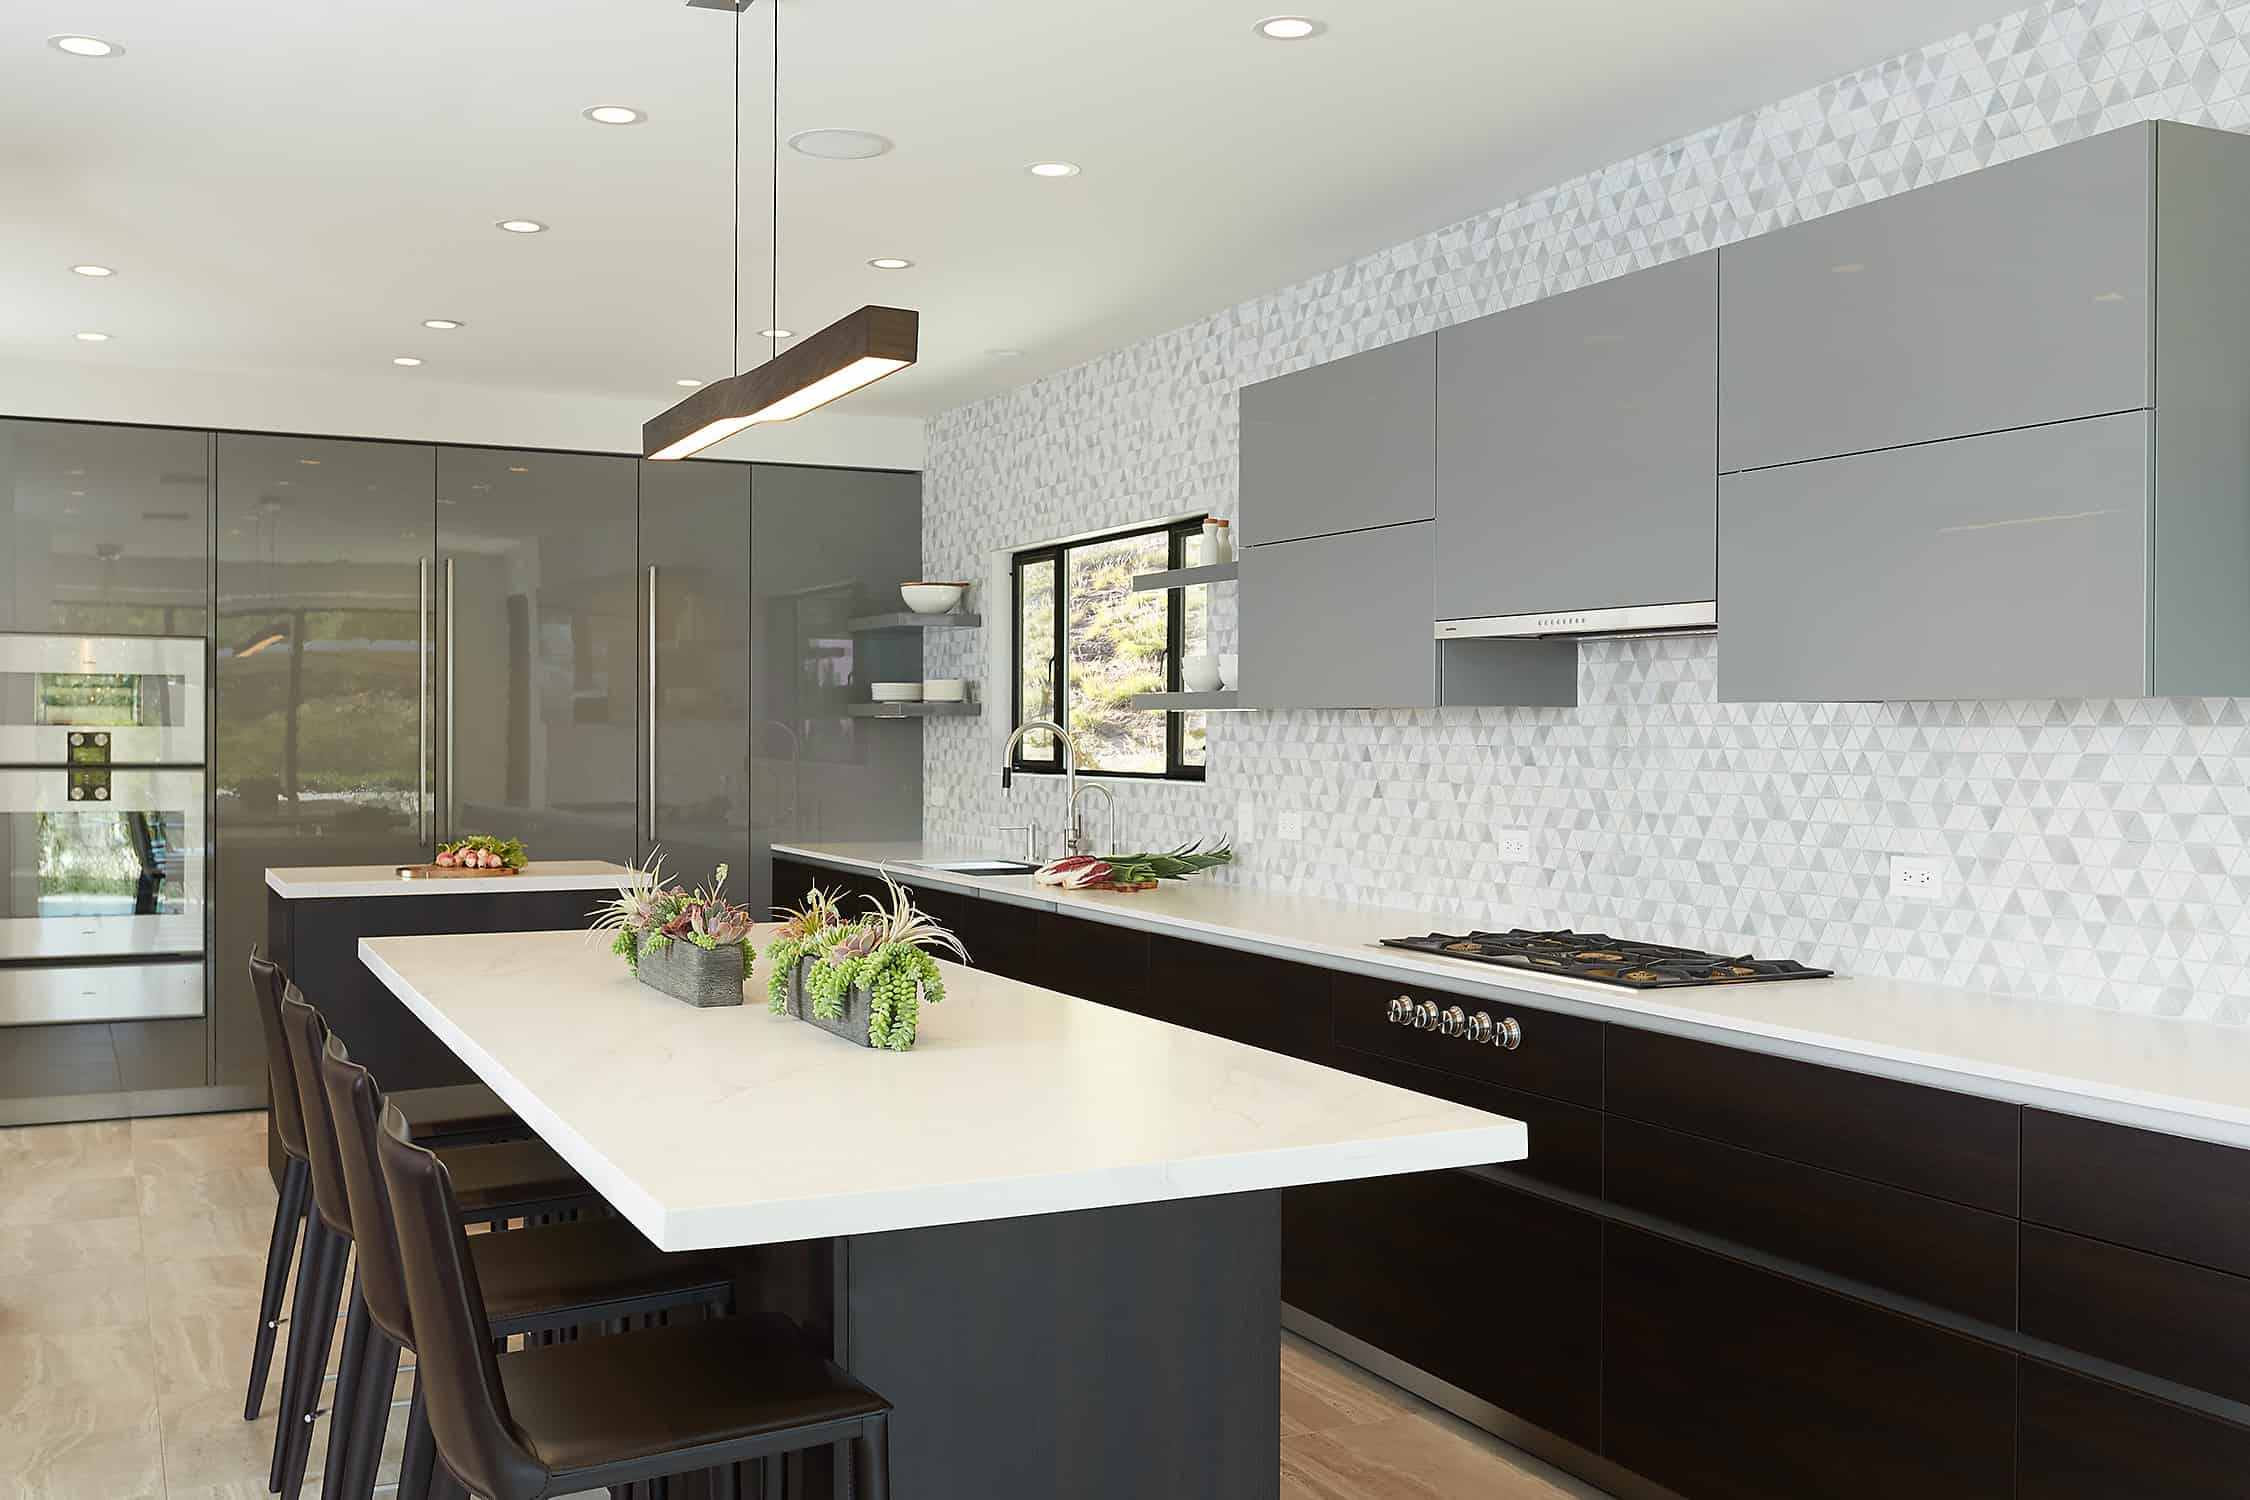 kitchen project completed by eggersmann la features a wall sleek integrated appliances and pantires